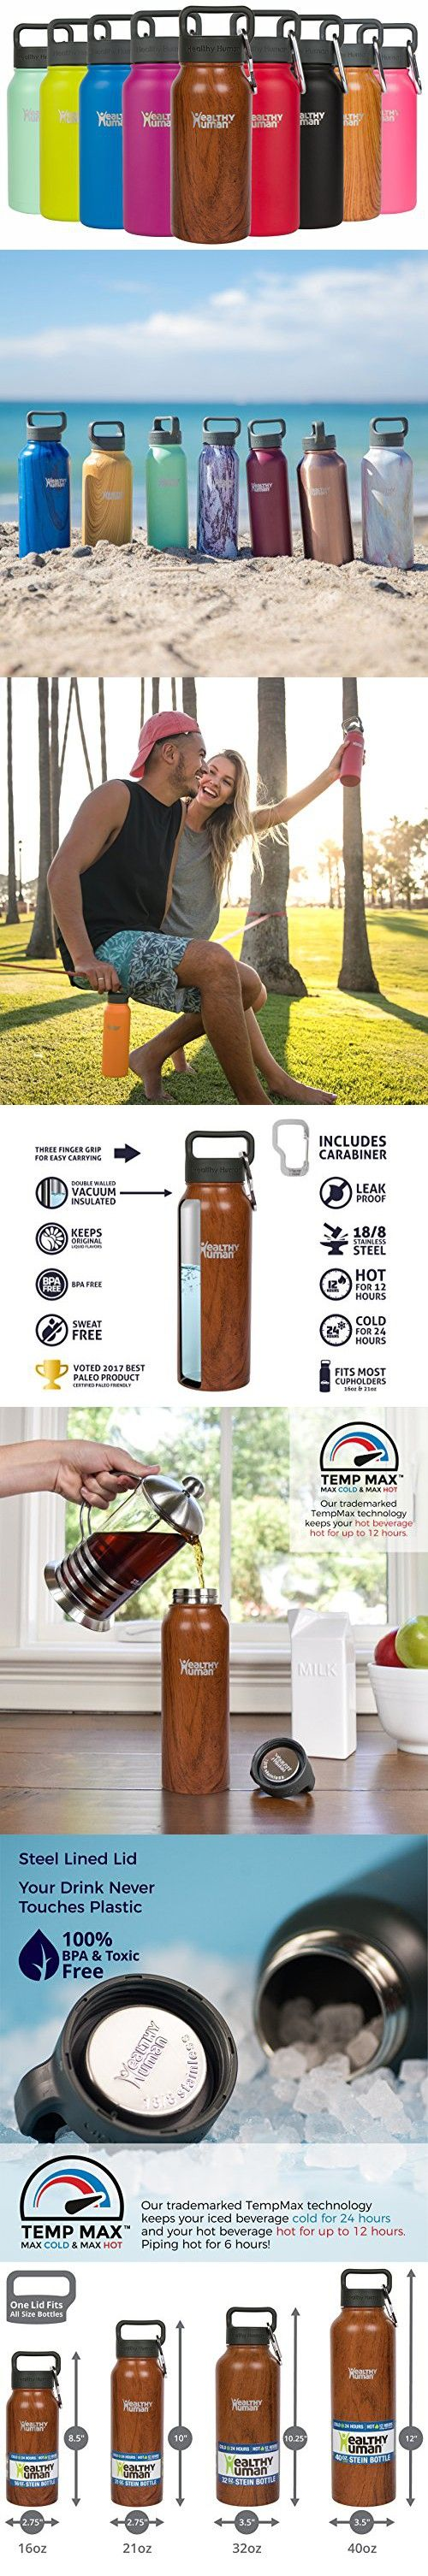 Healthy Human Stainless Steel Insulated Water Bottle Thermos - BPA Free Cap with Hydro Guide & Carabiner Set - Harvest Maple - 16 oz